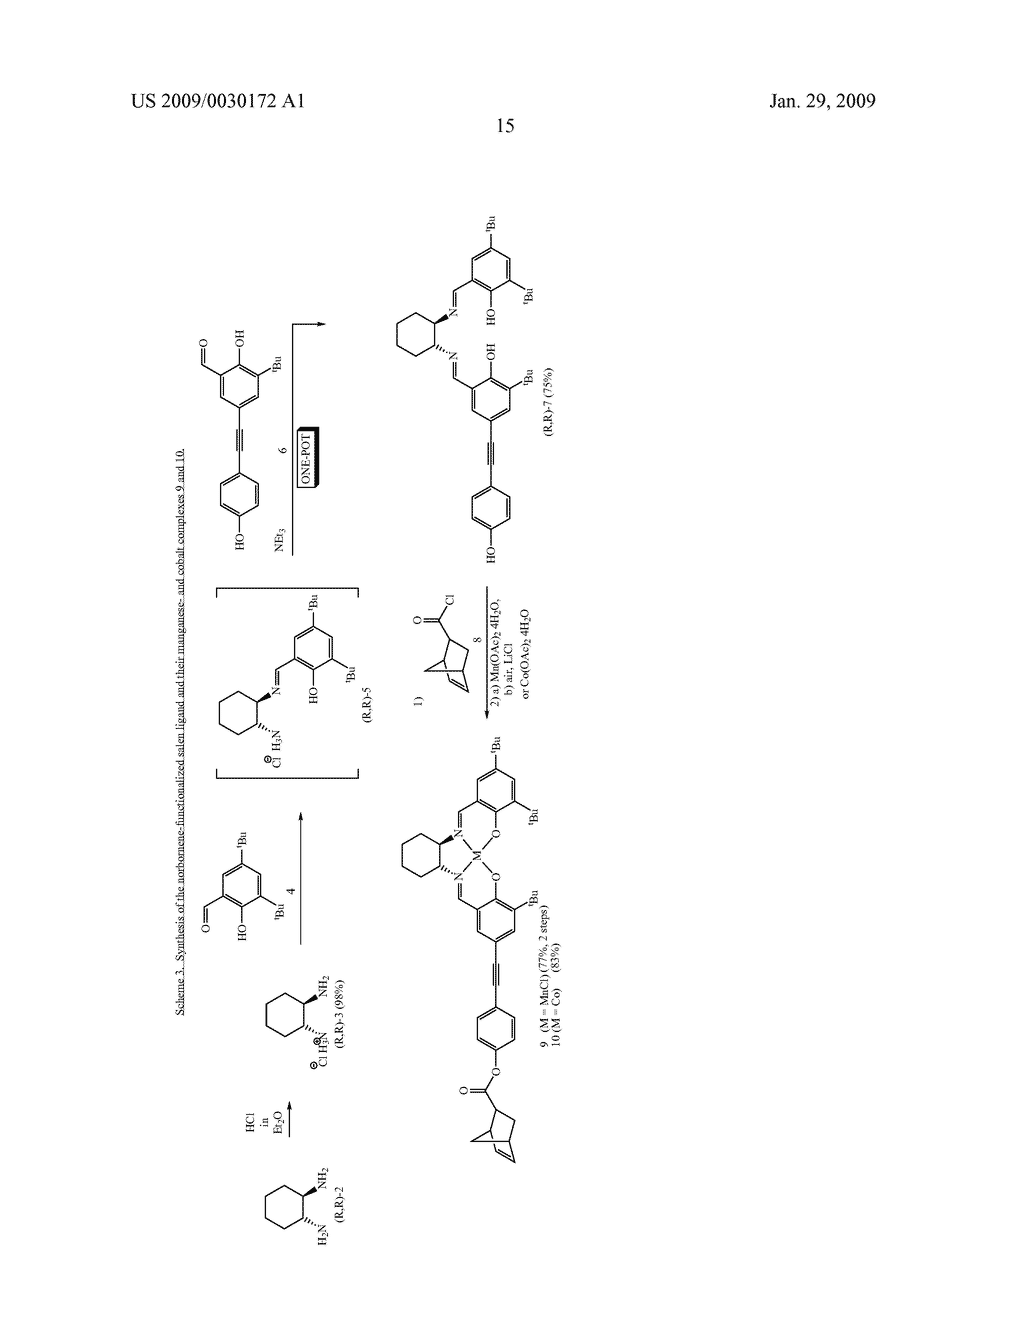 POLYMERIC SALEN COMPOUNDS AND METHODS THEREOF - diagram, schematic, and image 16